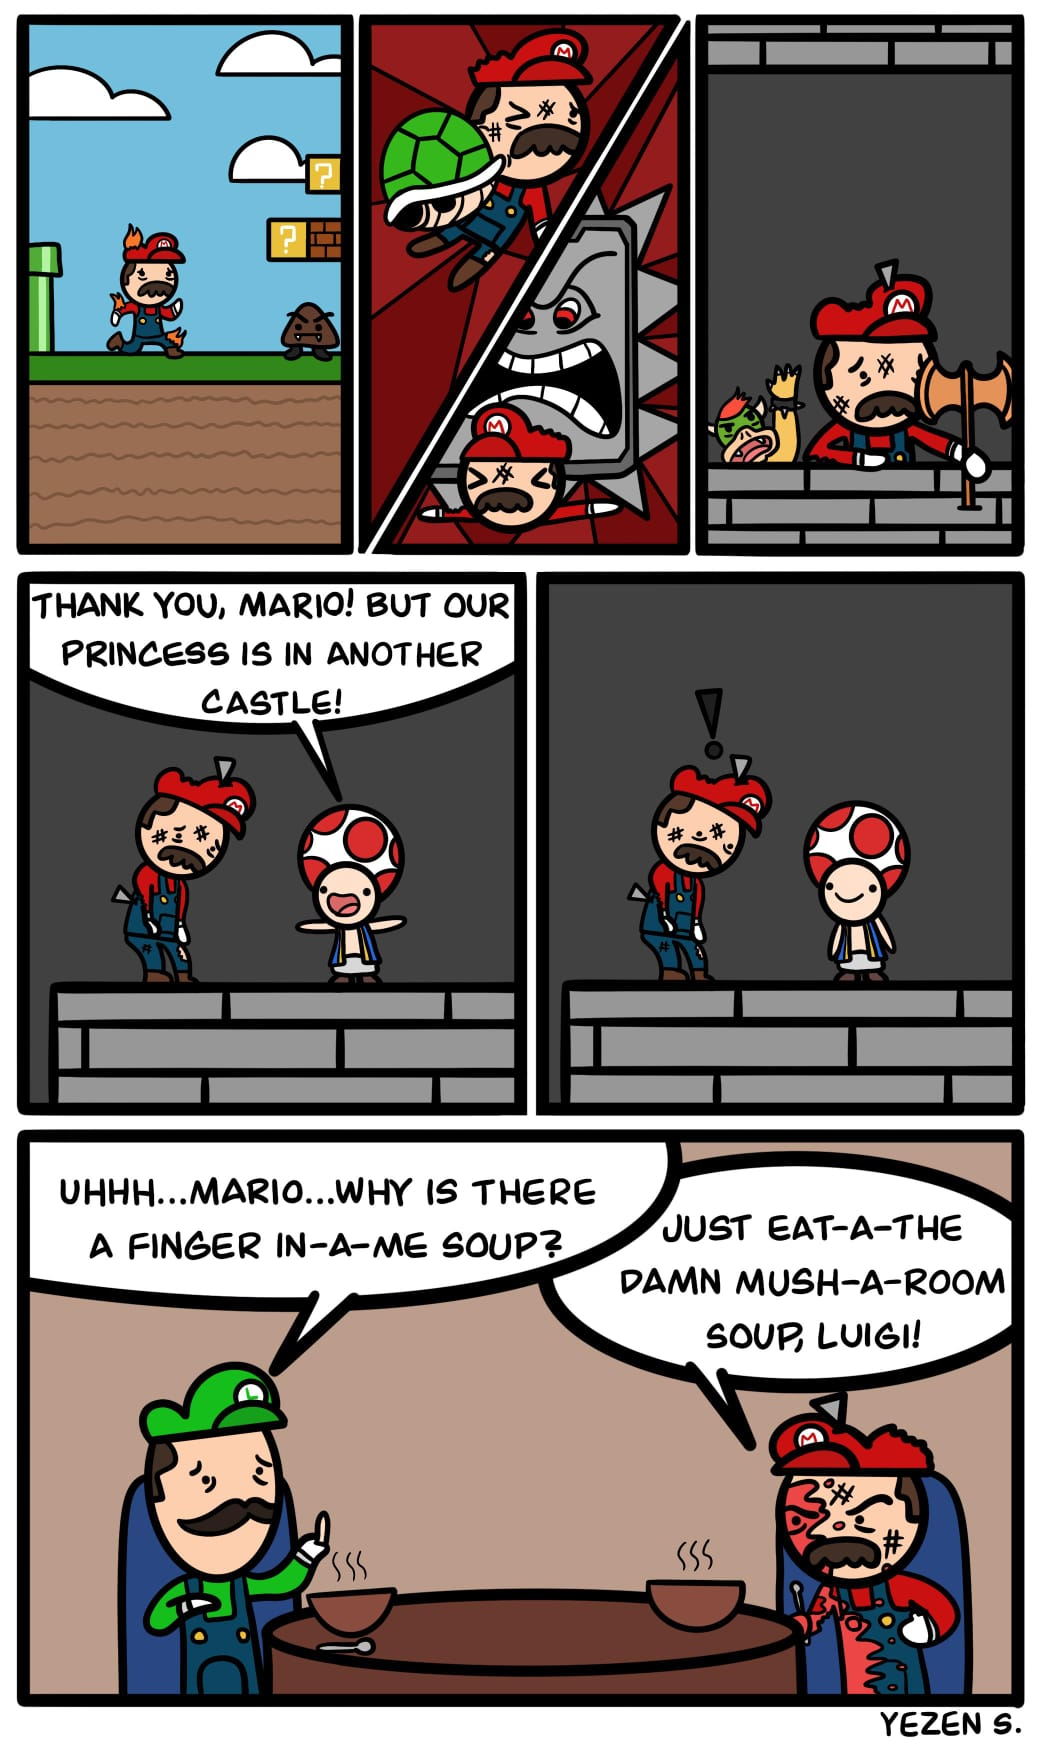 Just eat the damn mush-a-room soup, Luigi!